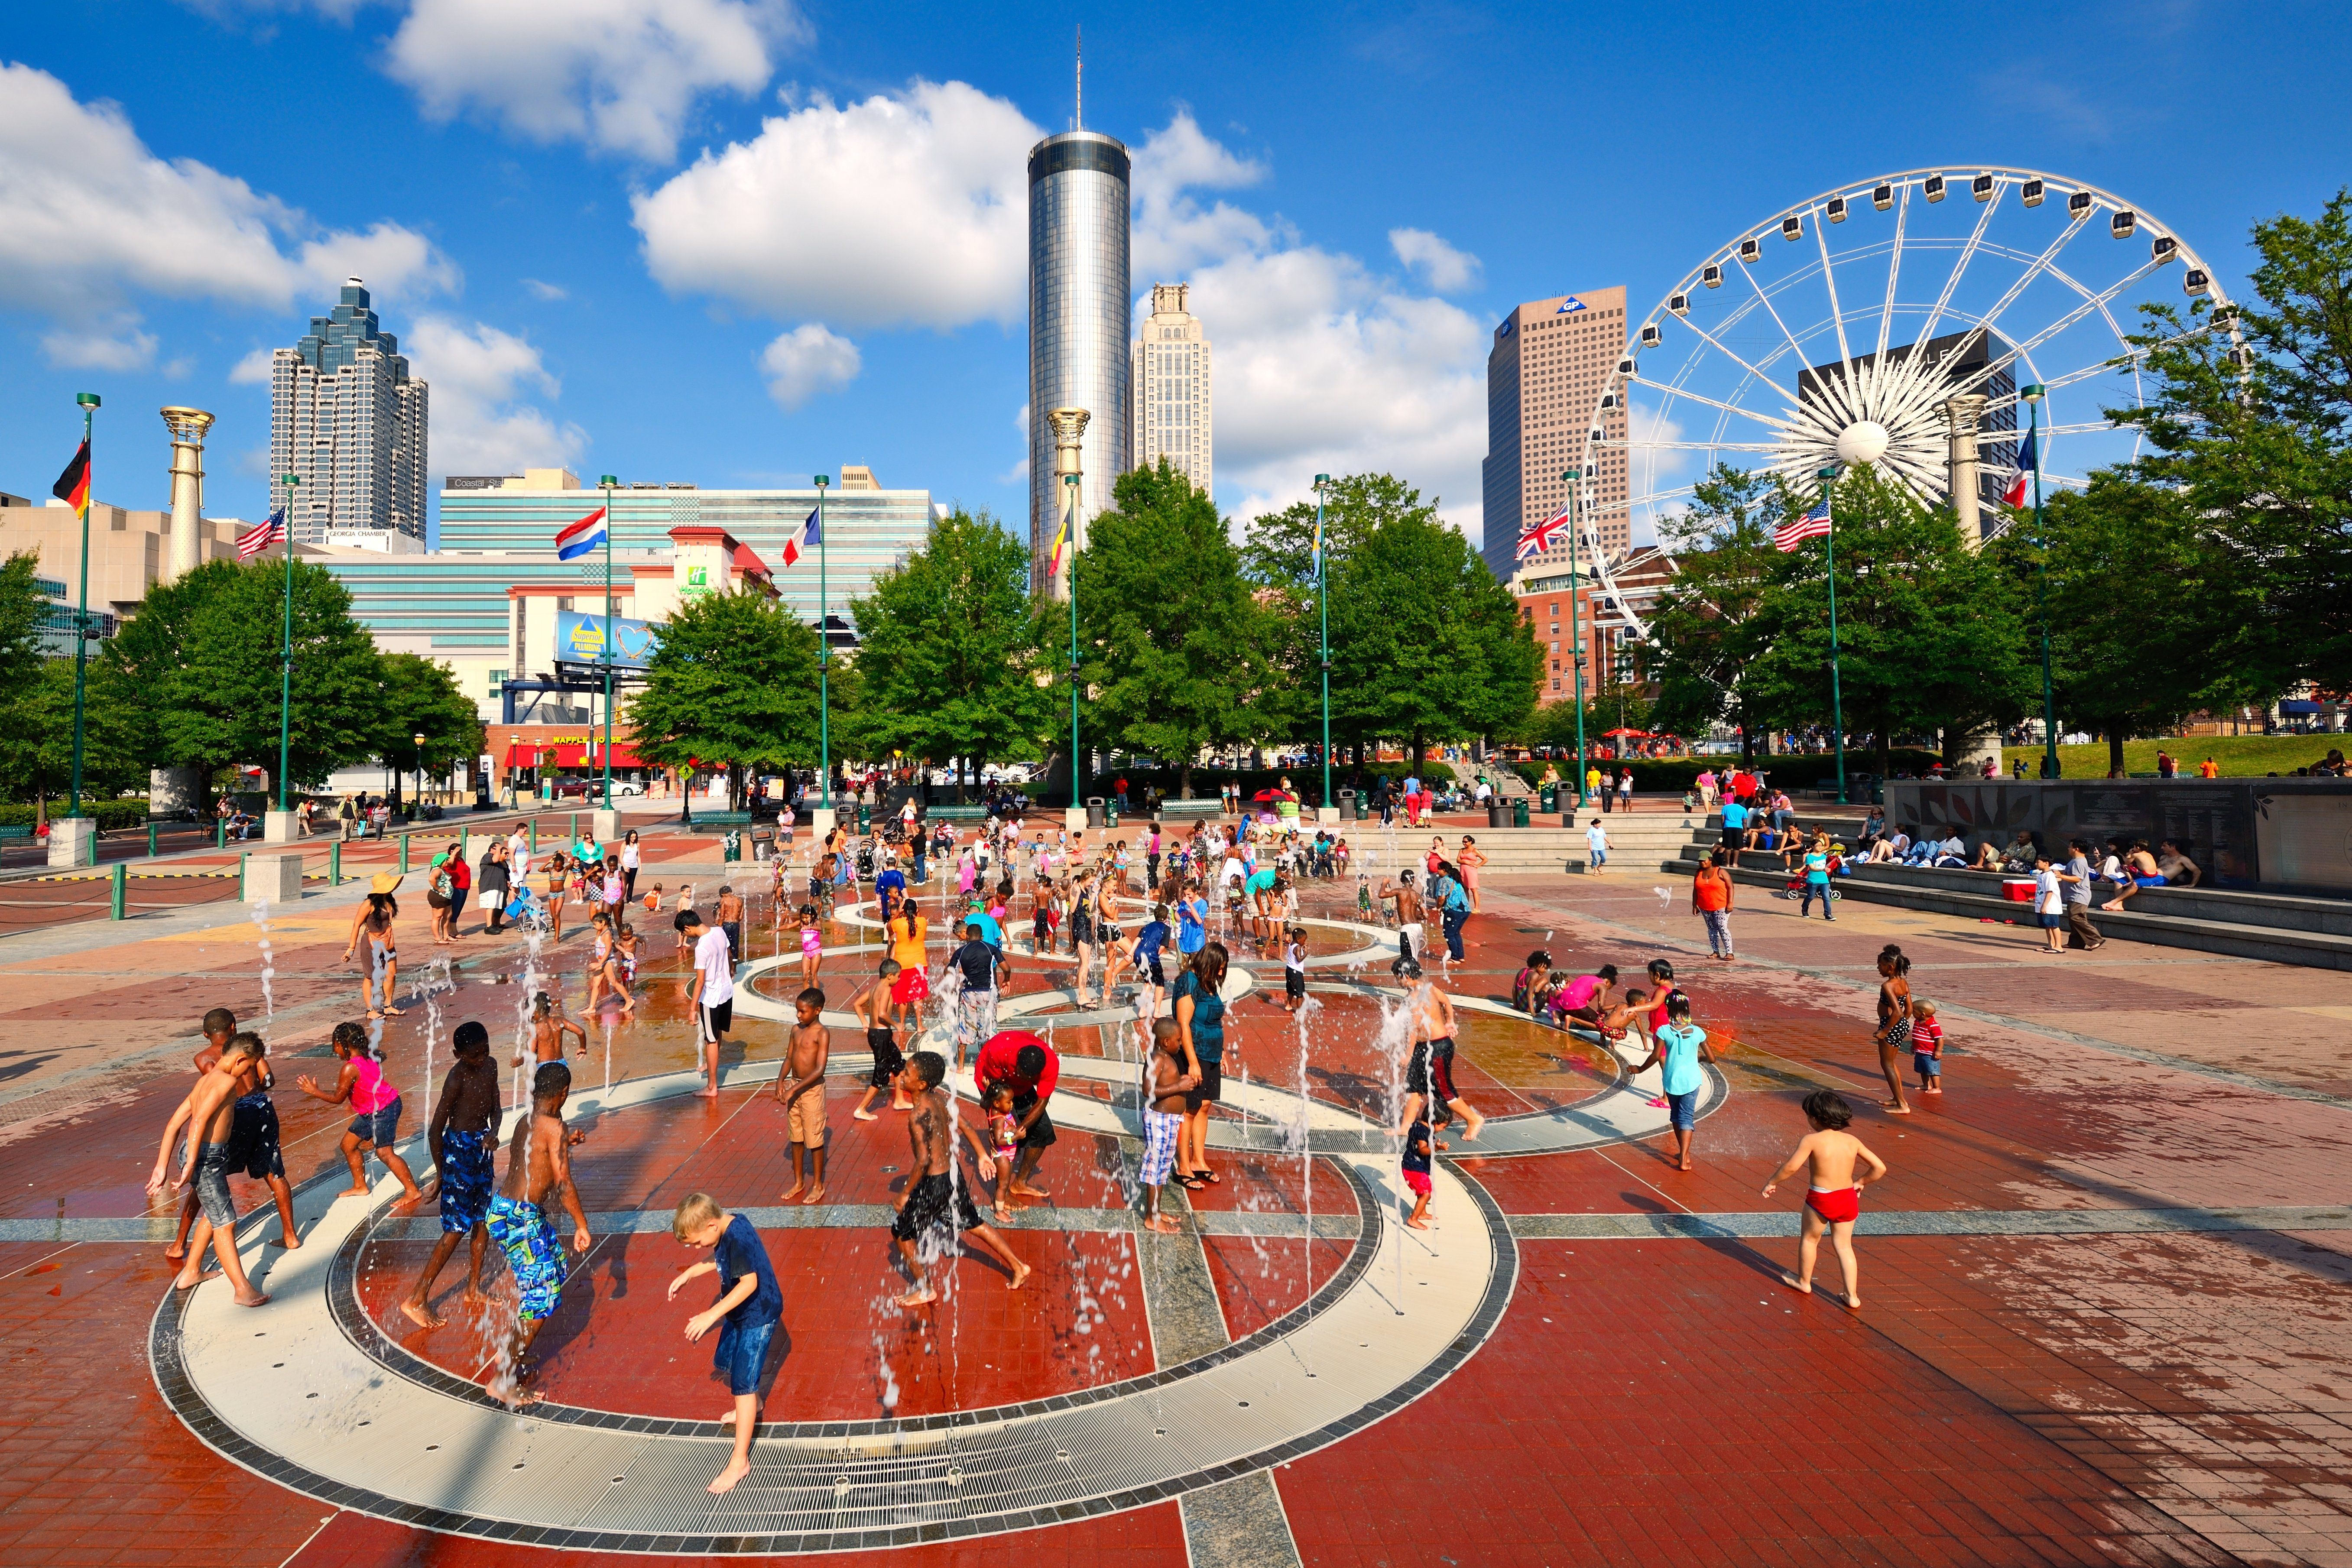 Atlanta, Georgia, USA - August 25, 2013: Children play at Centennial Olympic Park. The park commemorates the 1996 Atlanta Olympics and is a popular attraction.